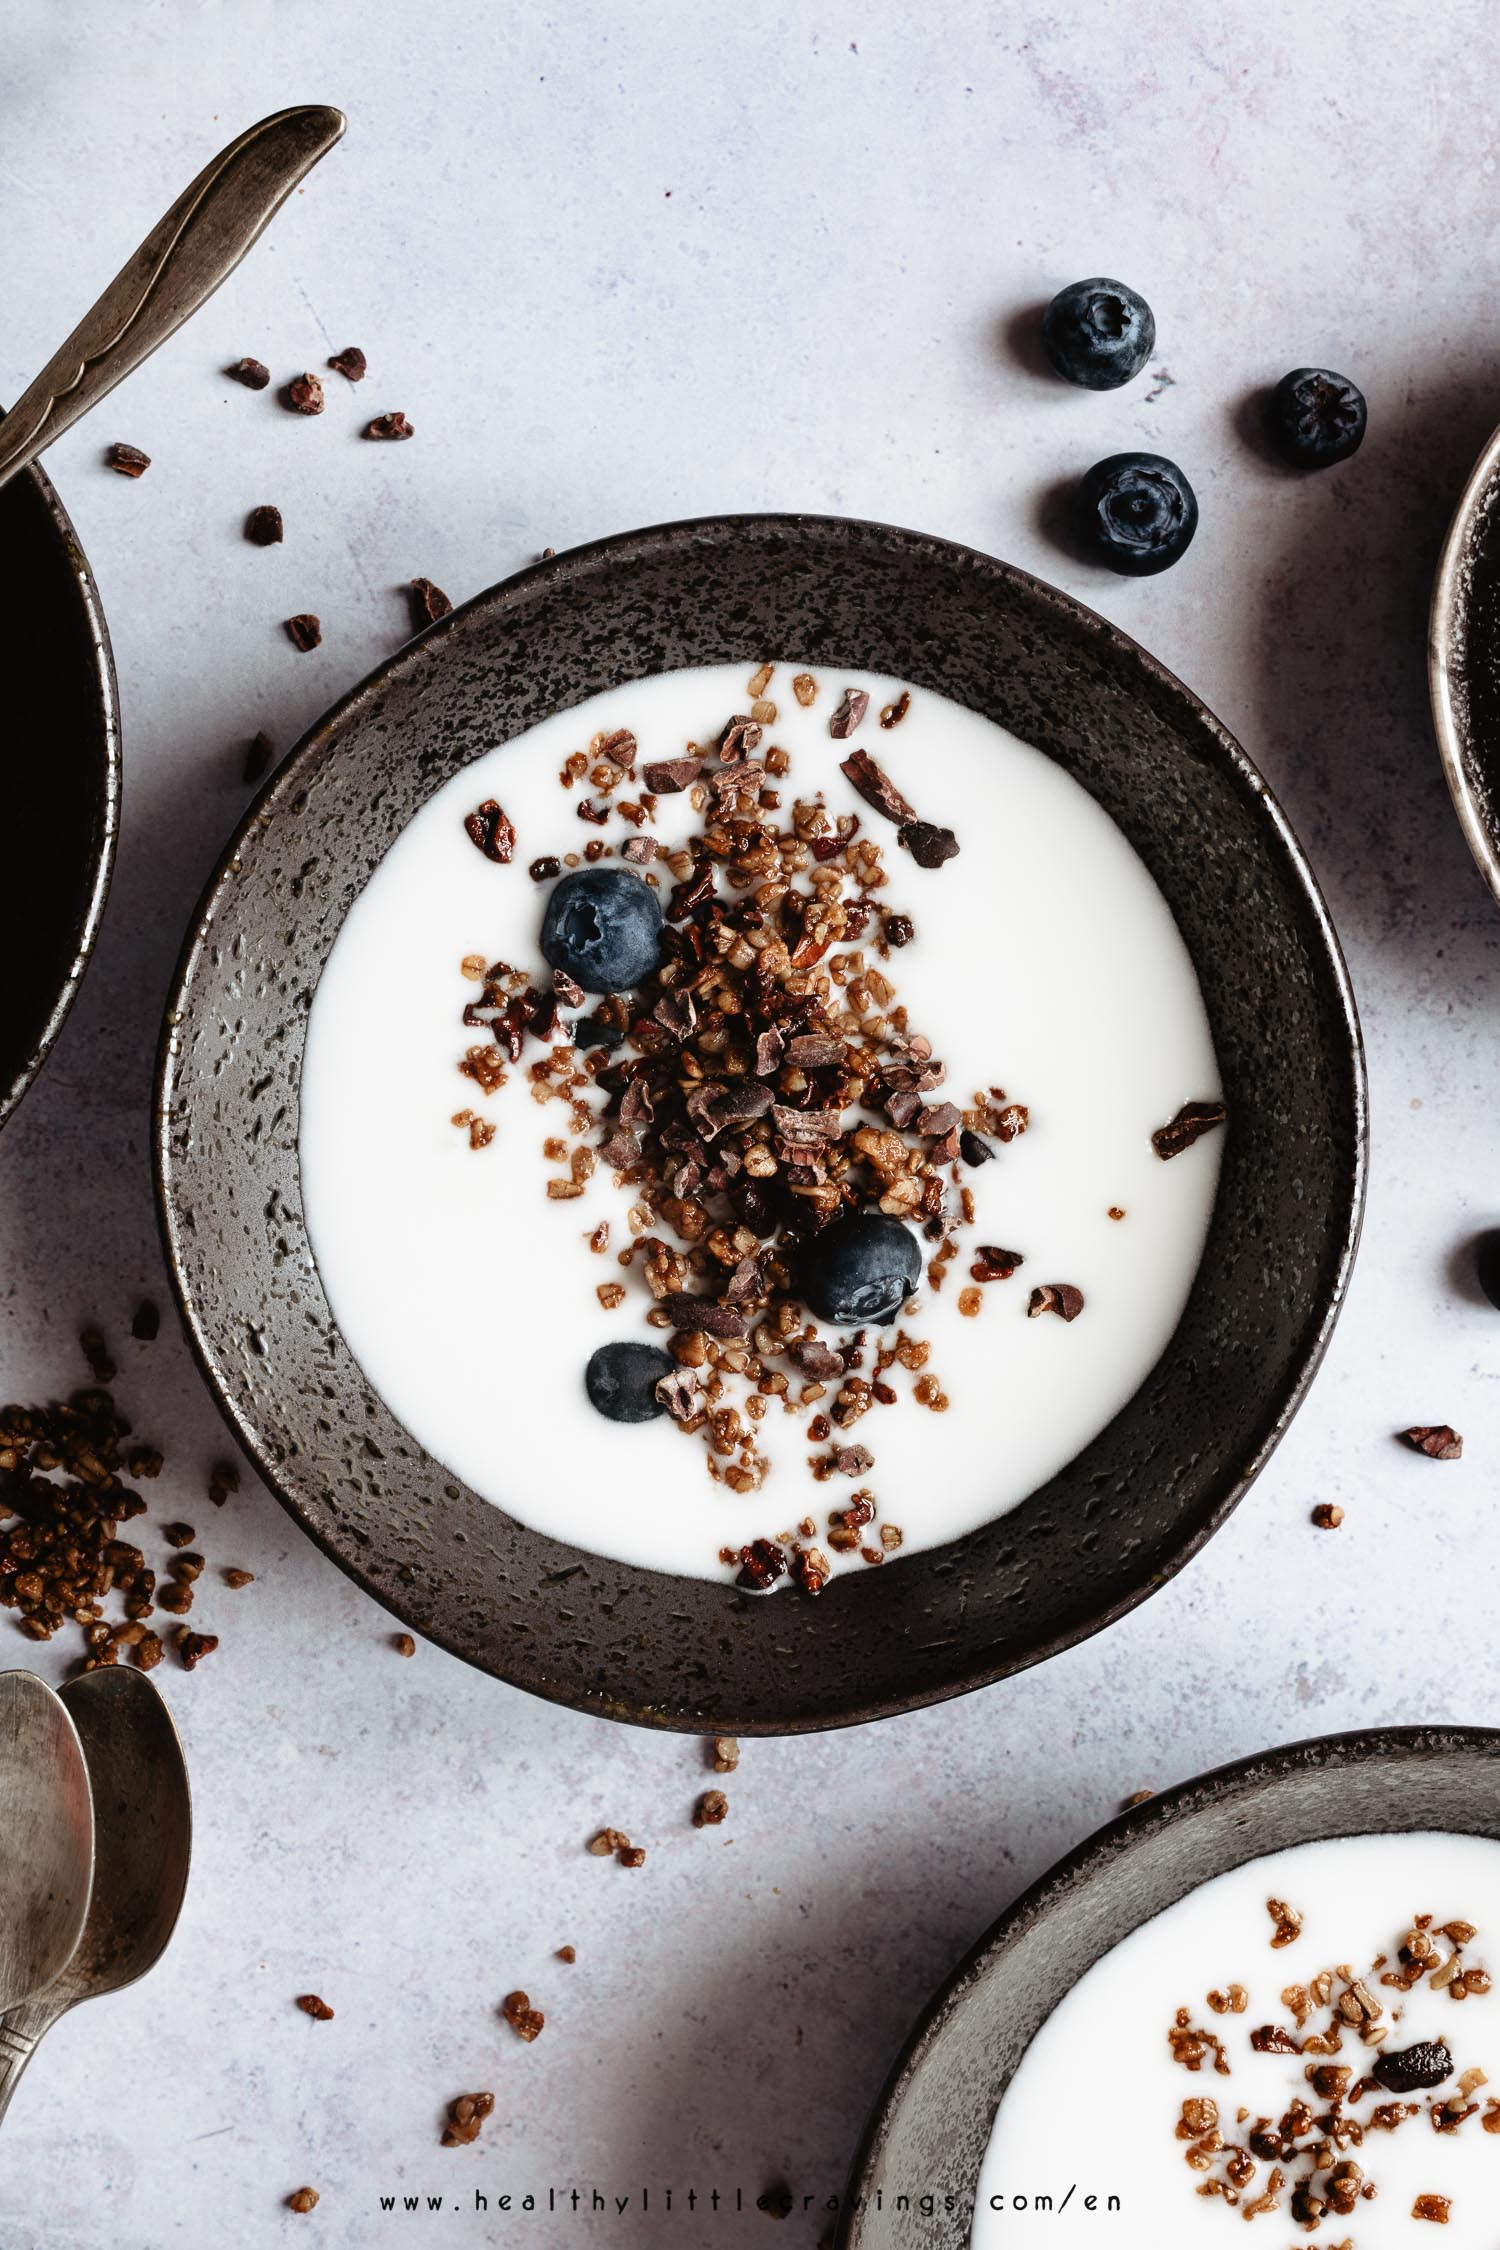 This post will teach you how to make vanilla yogurt